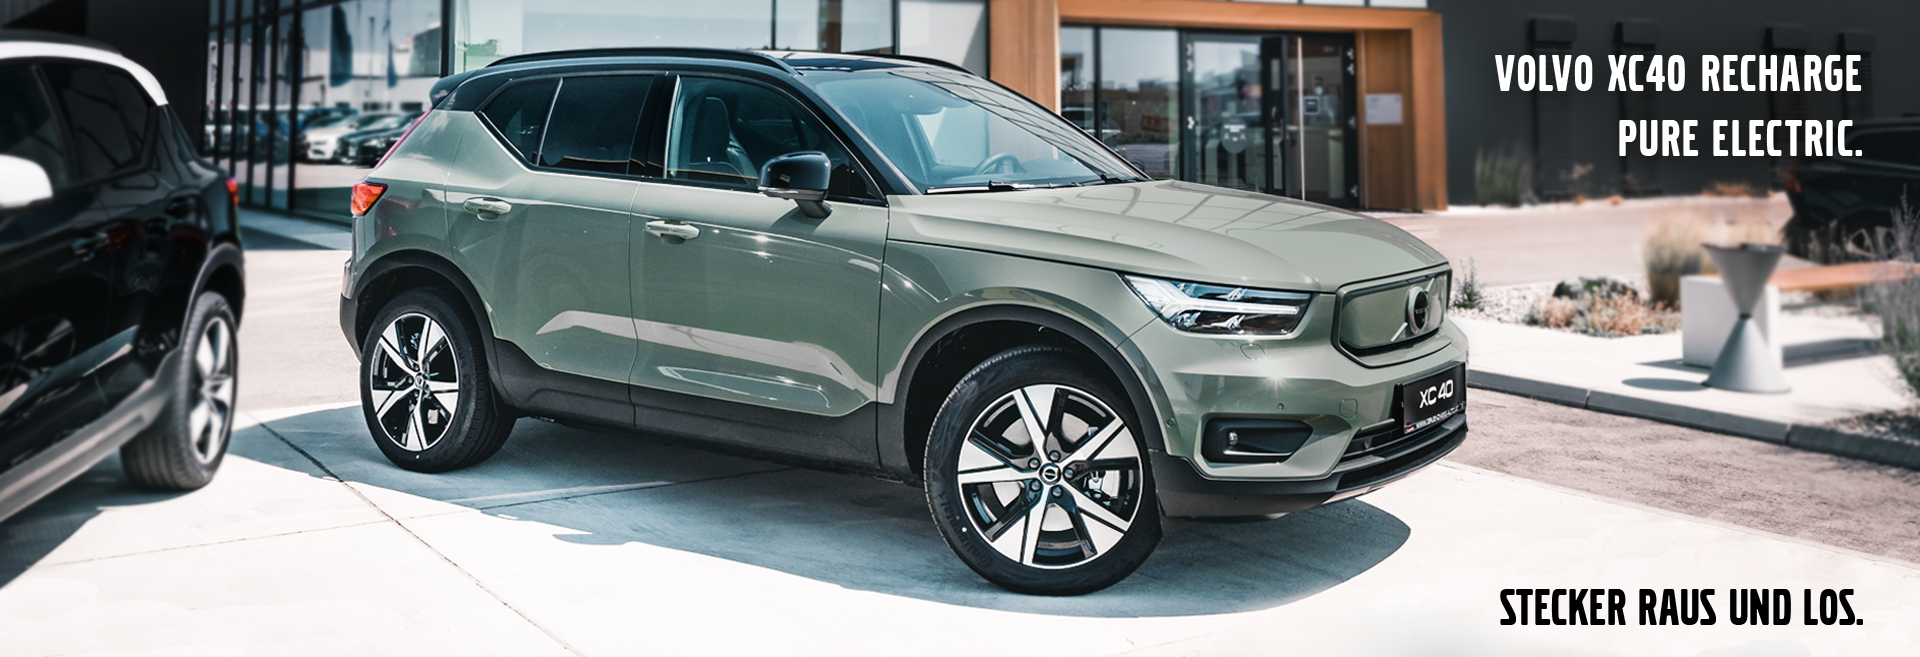 Der Volvo XC40 Recharge Pure Electric